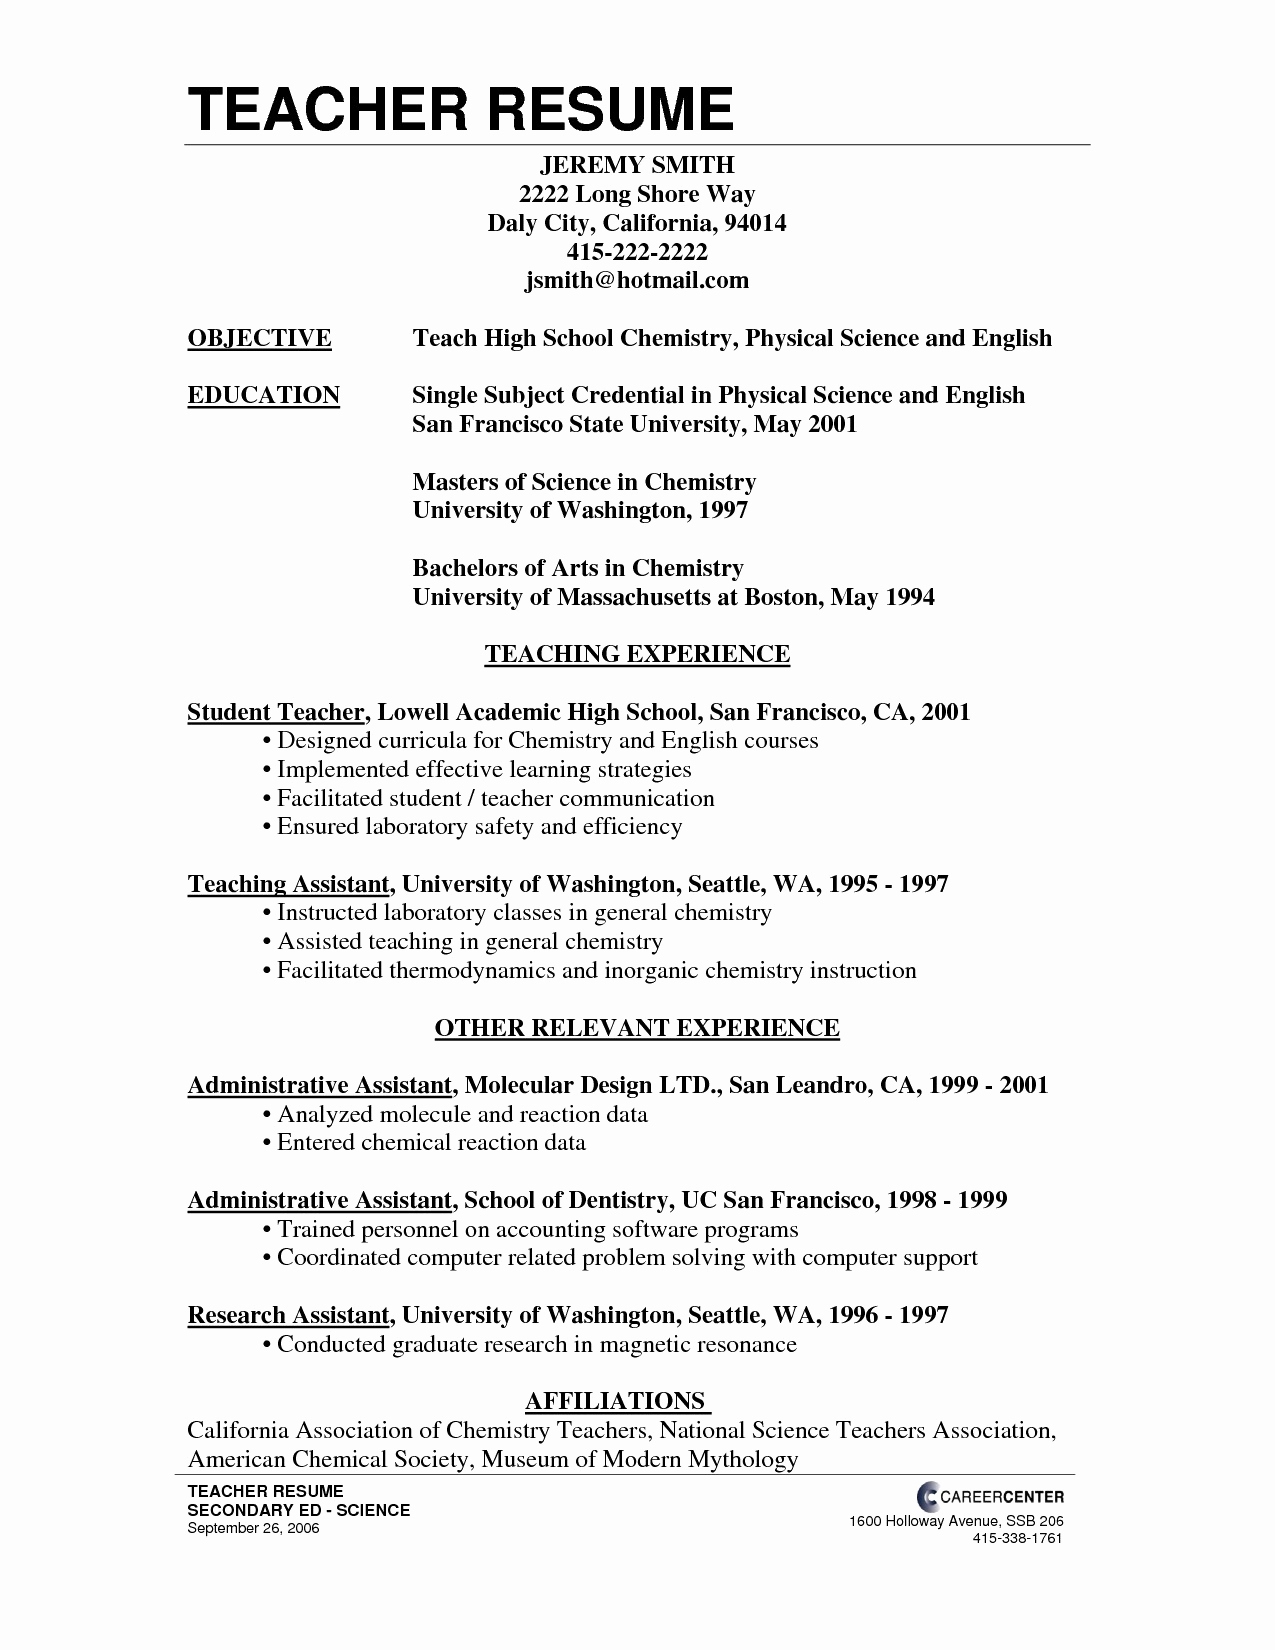 Free Letter Template Word - Resume Templates Word Free New Free Cover Letter Templates Examples